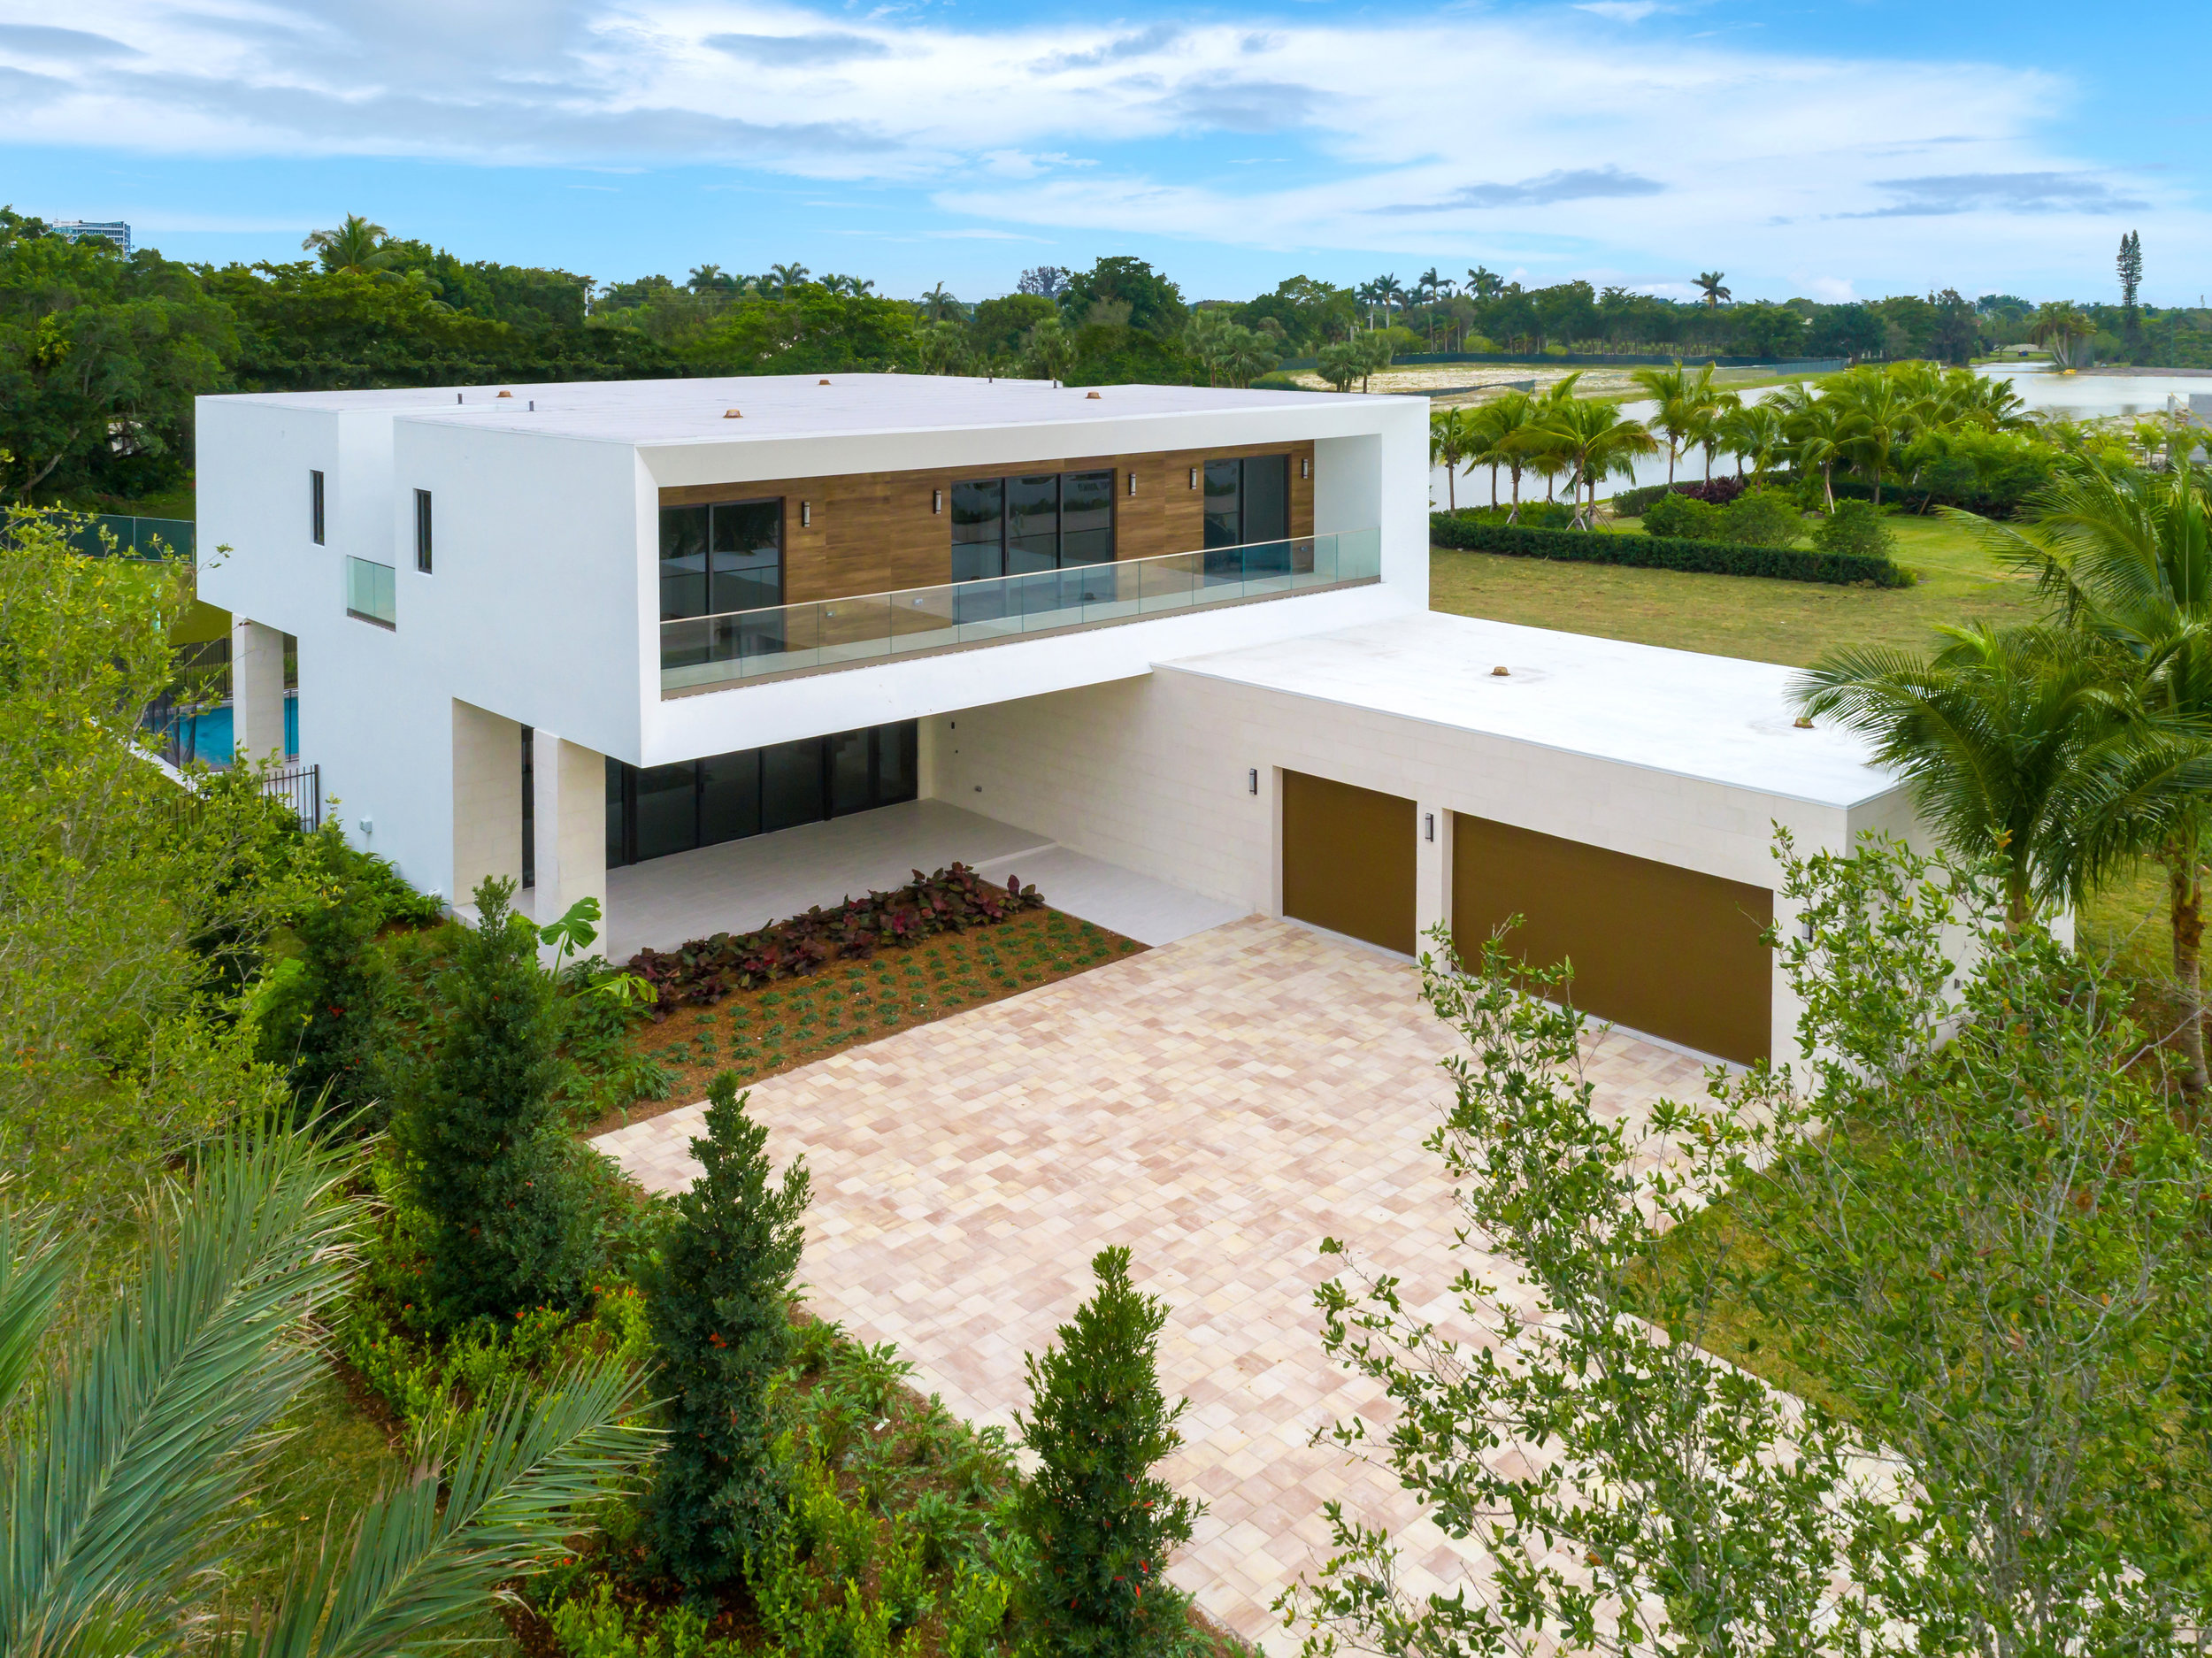 Sales Eclipse $100 Million at Terra's Botaniko Weston Luxury Home Community Designed By Chad Oppenheim and Roney J. Mateu